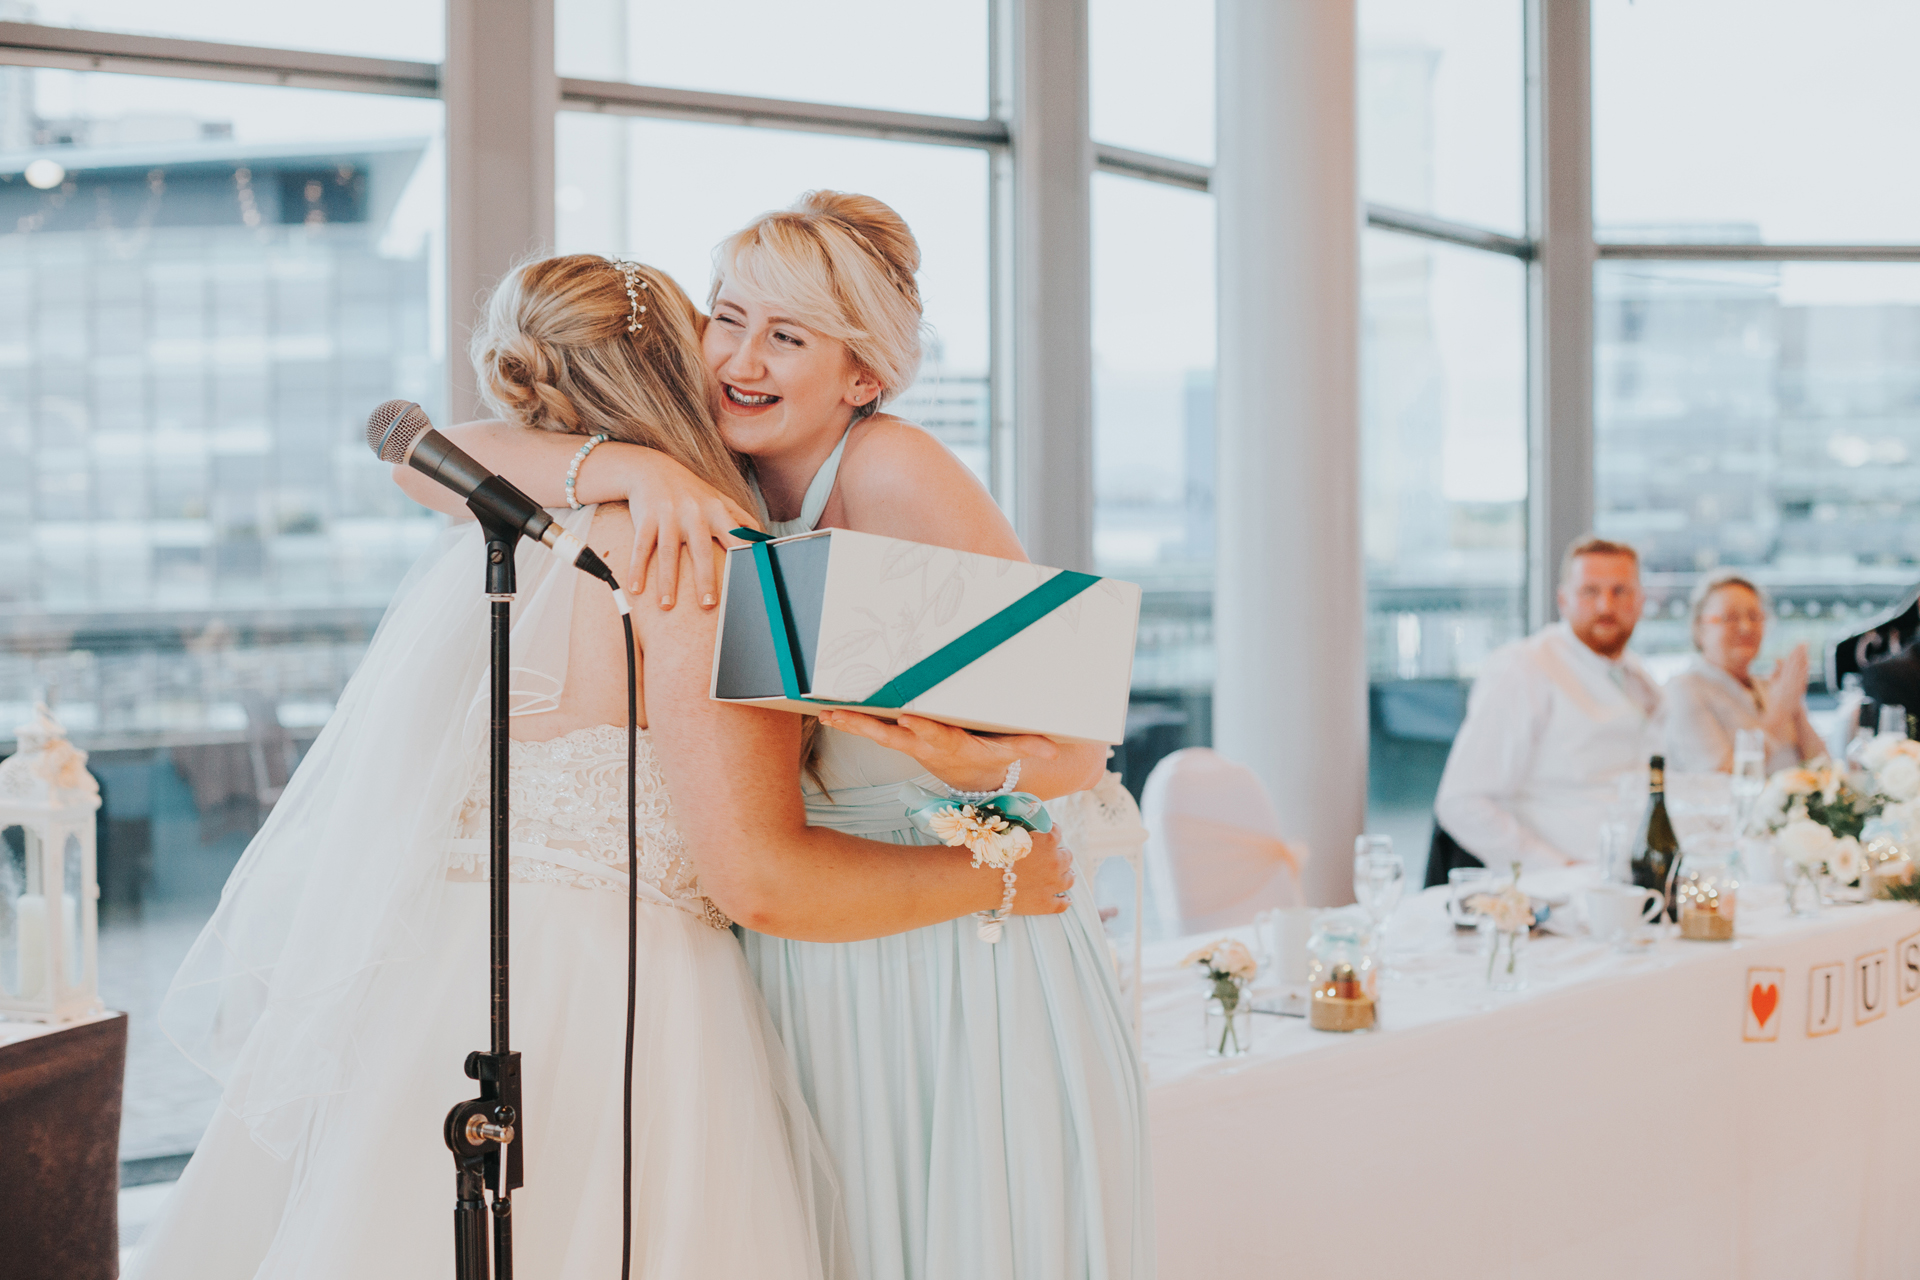 Bridesmaid gives bride a big hug.